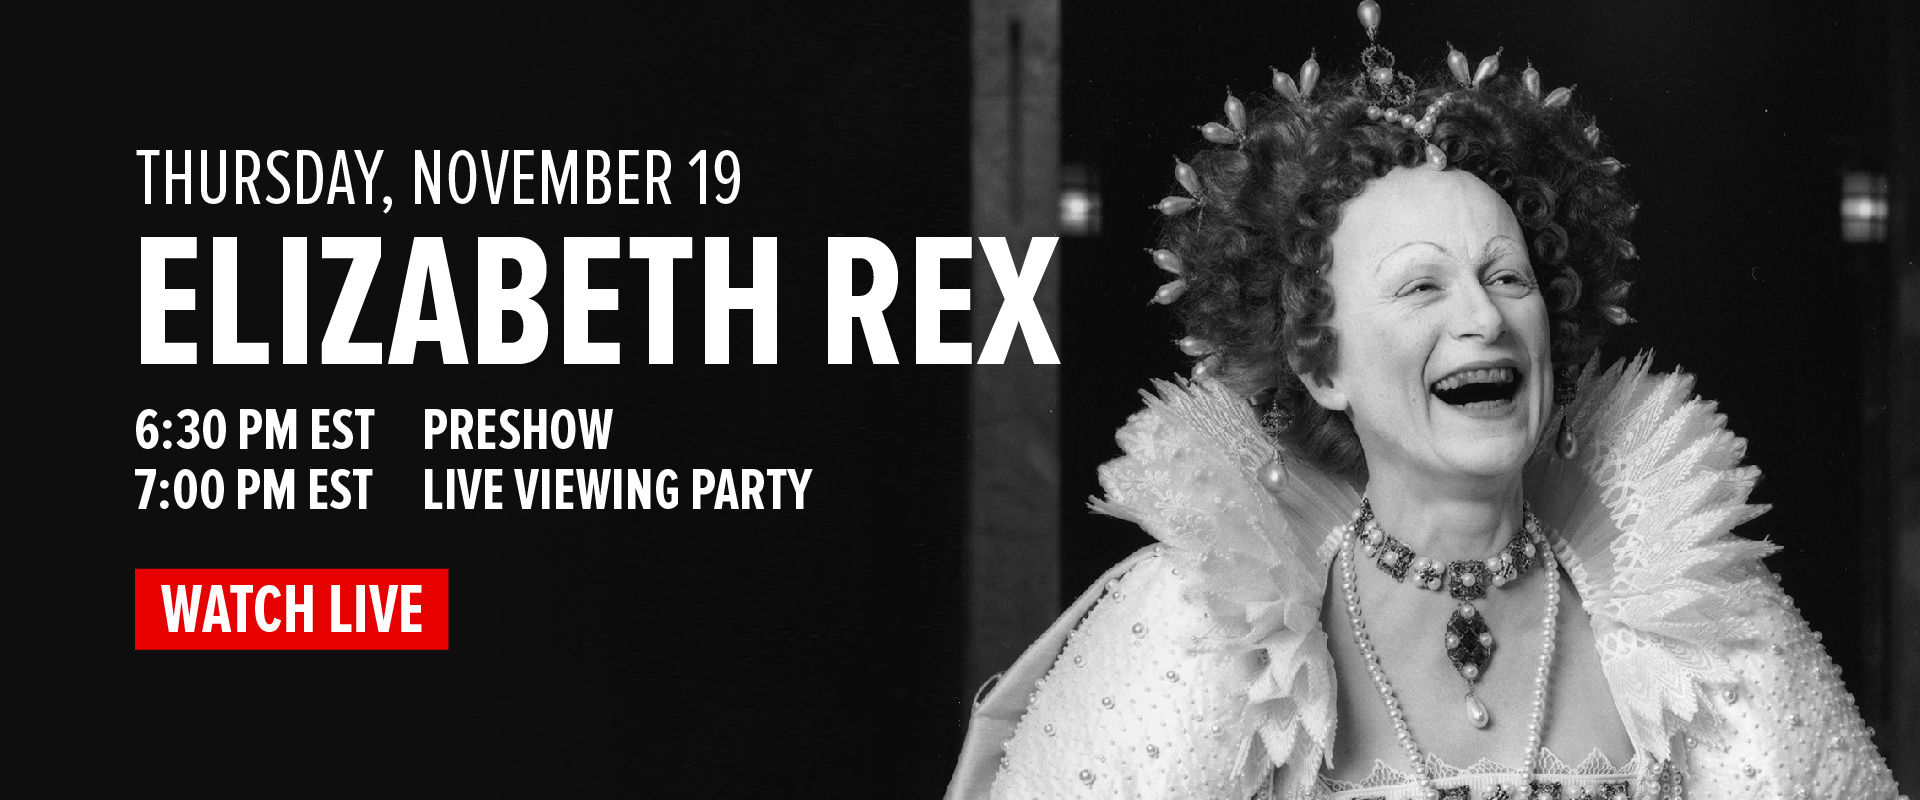 ELIZABETH REX LIVE VIEWING PARTY